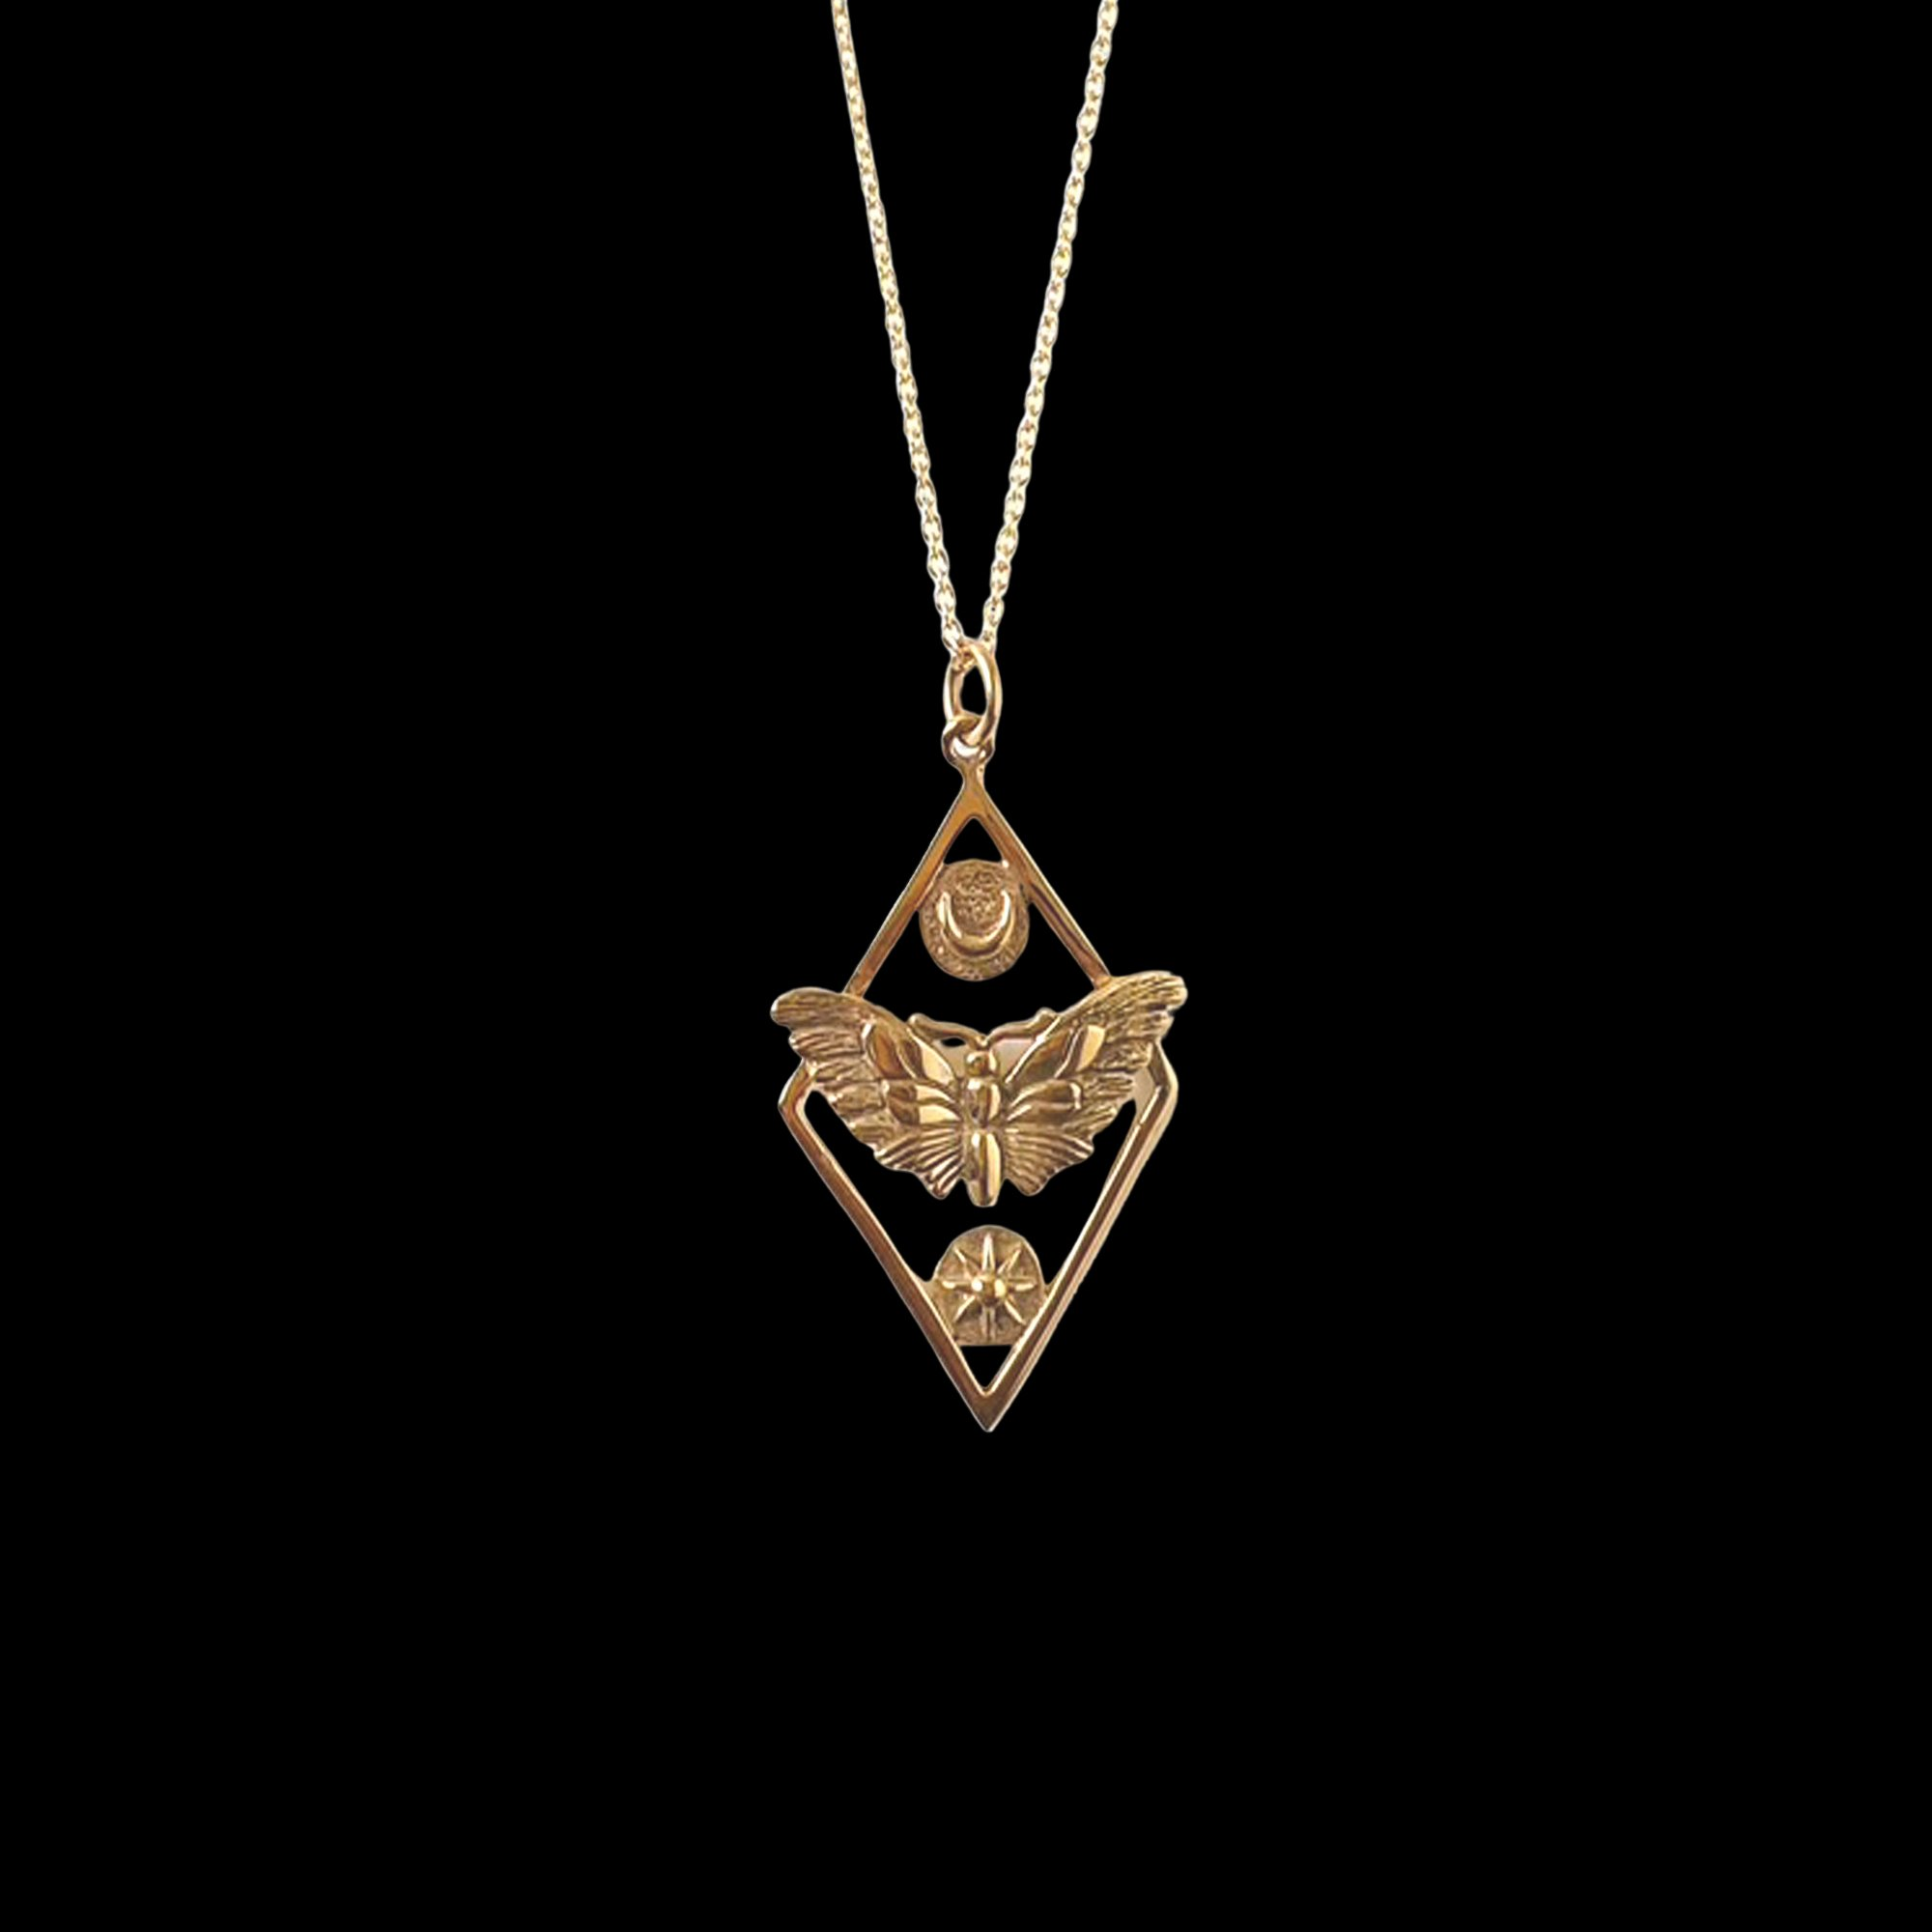 Image of Moth Charm Necklace with Moon And Sun